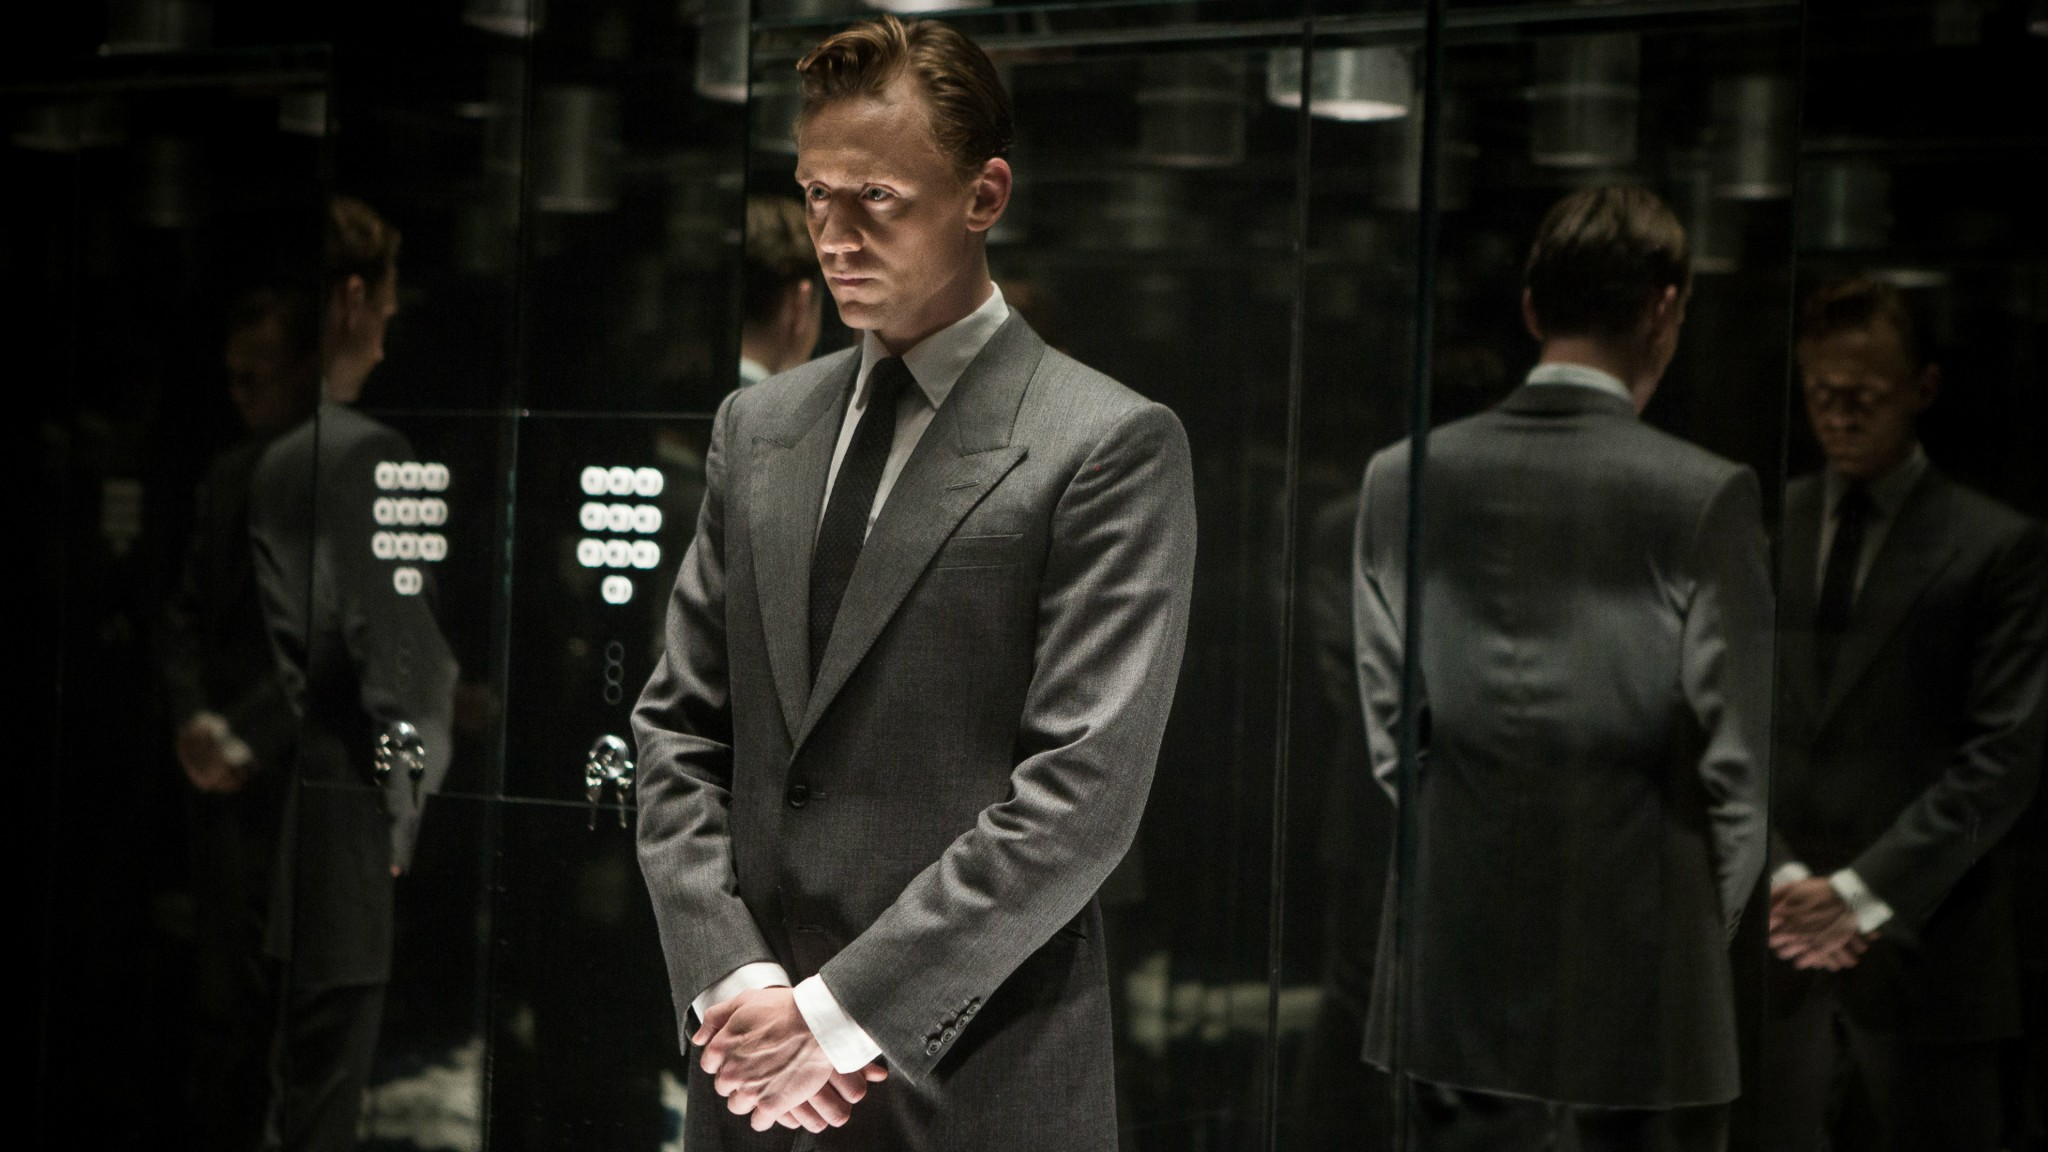 Tom Hiddleston in High Rise